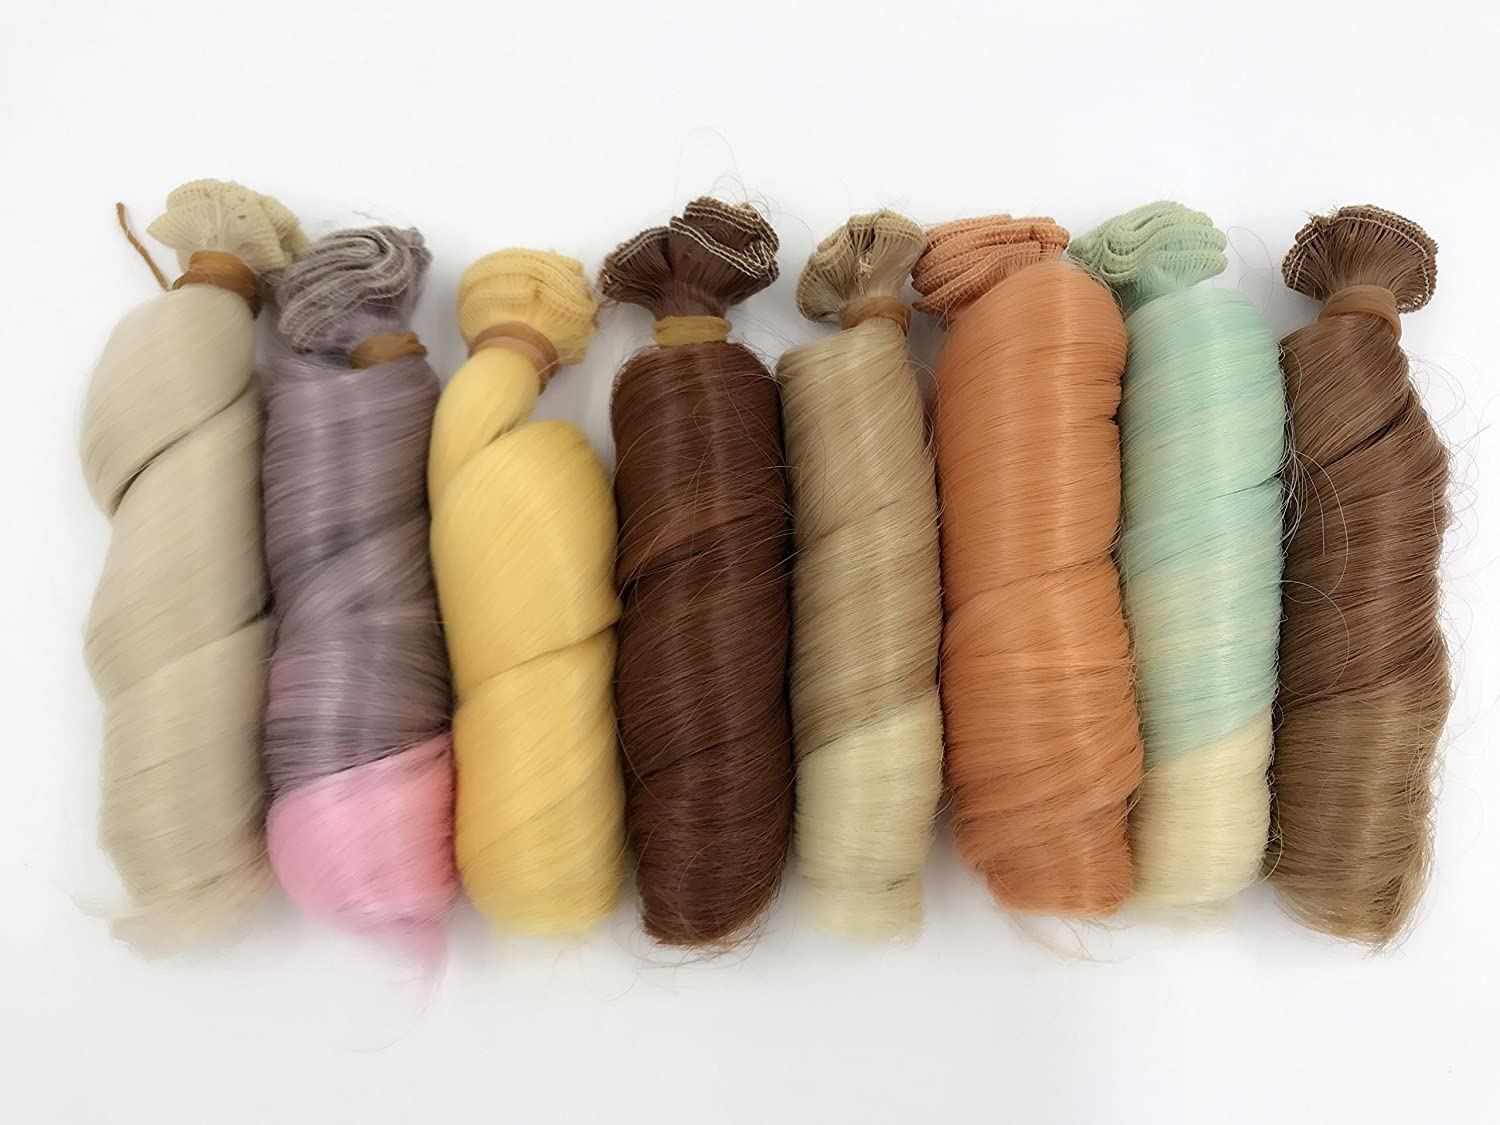 A Set Of 12 Color SD Doll DIY Straight Hair 15cm100cm BJD/- For Arts and Crafts, Doll Making, and More Xing-Rui